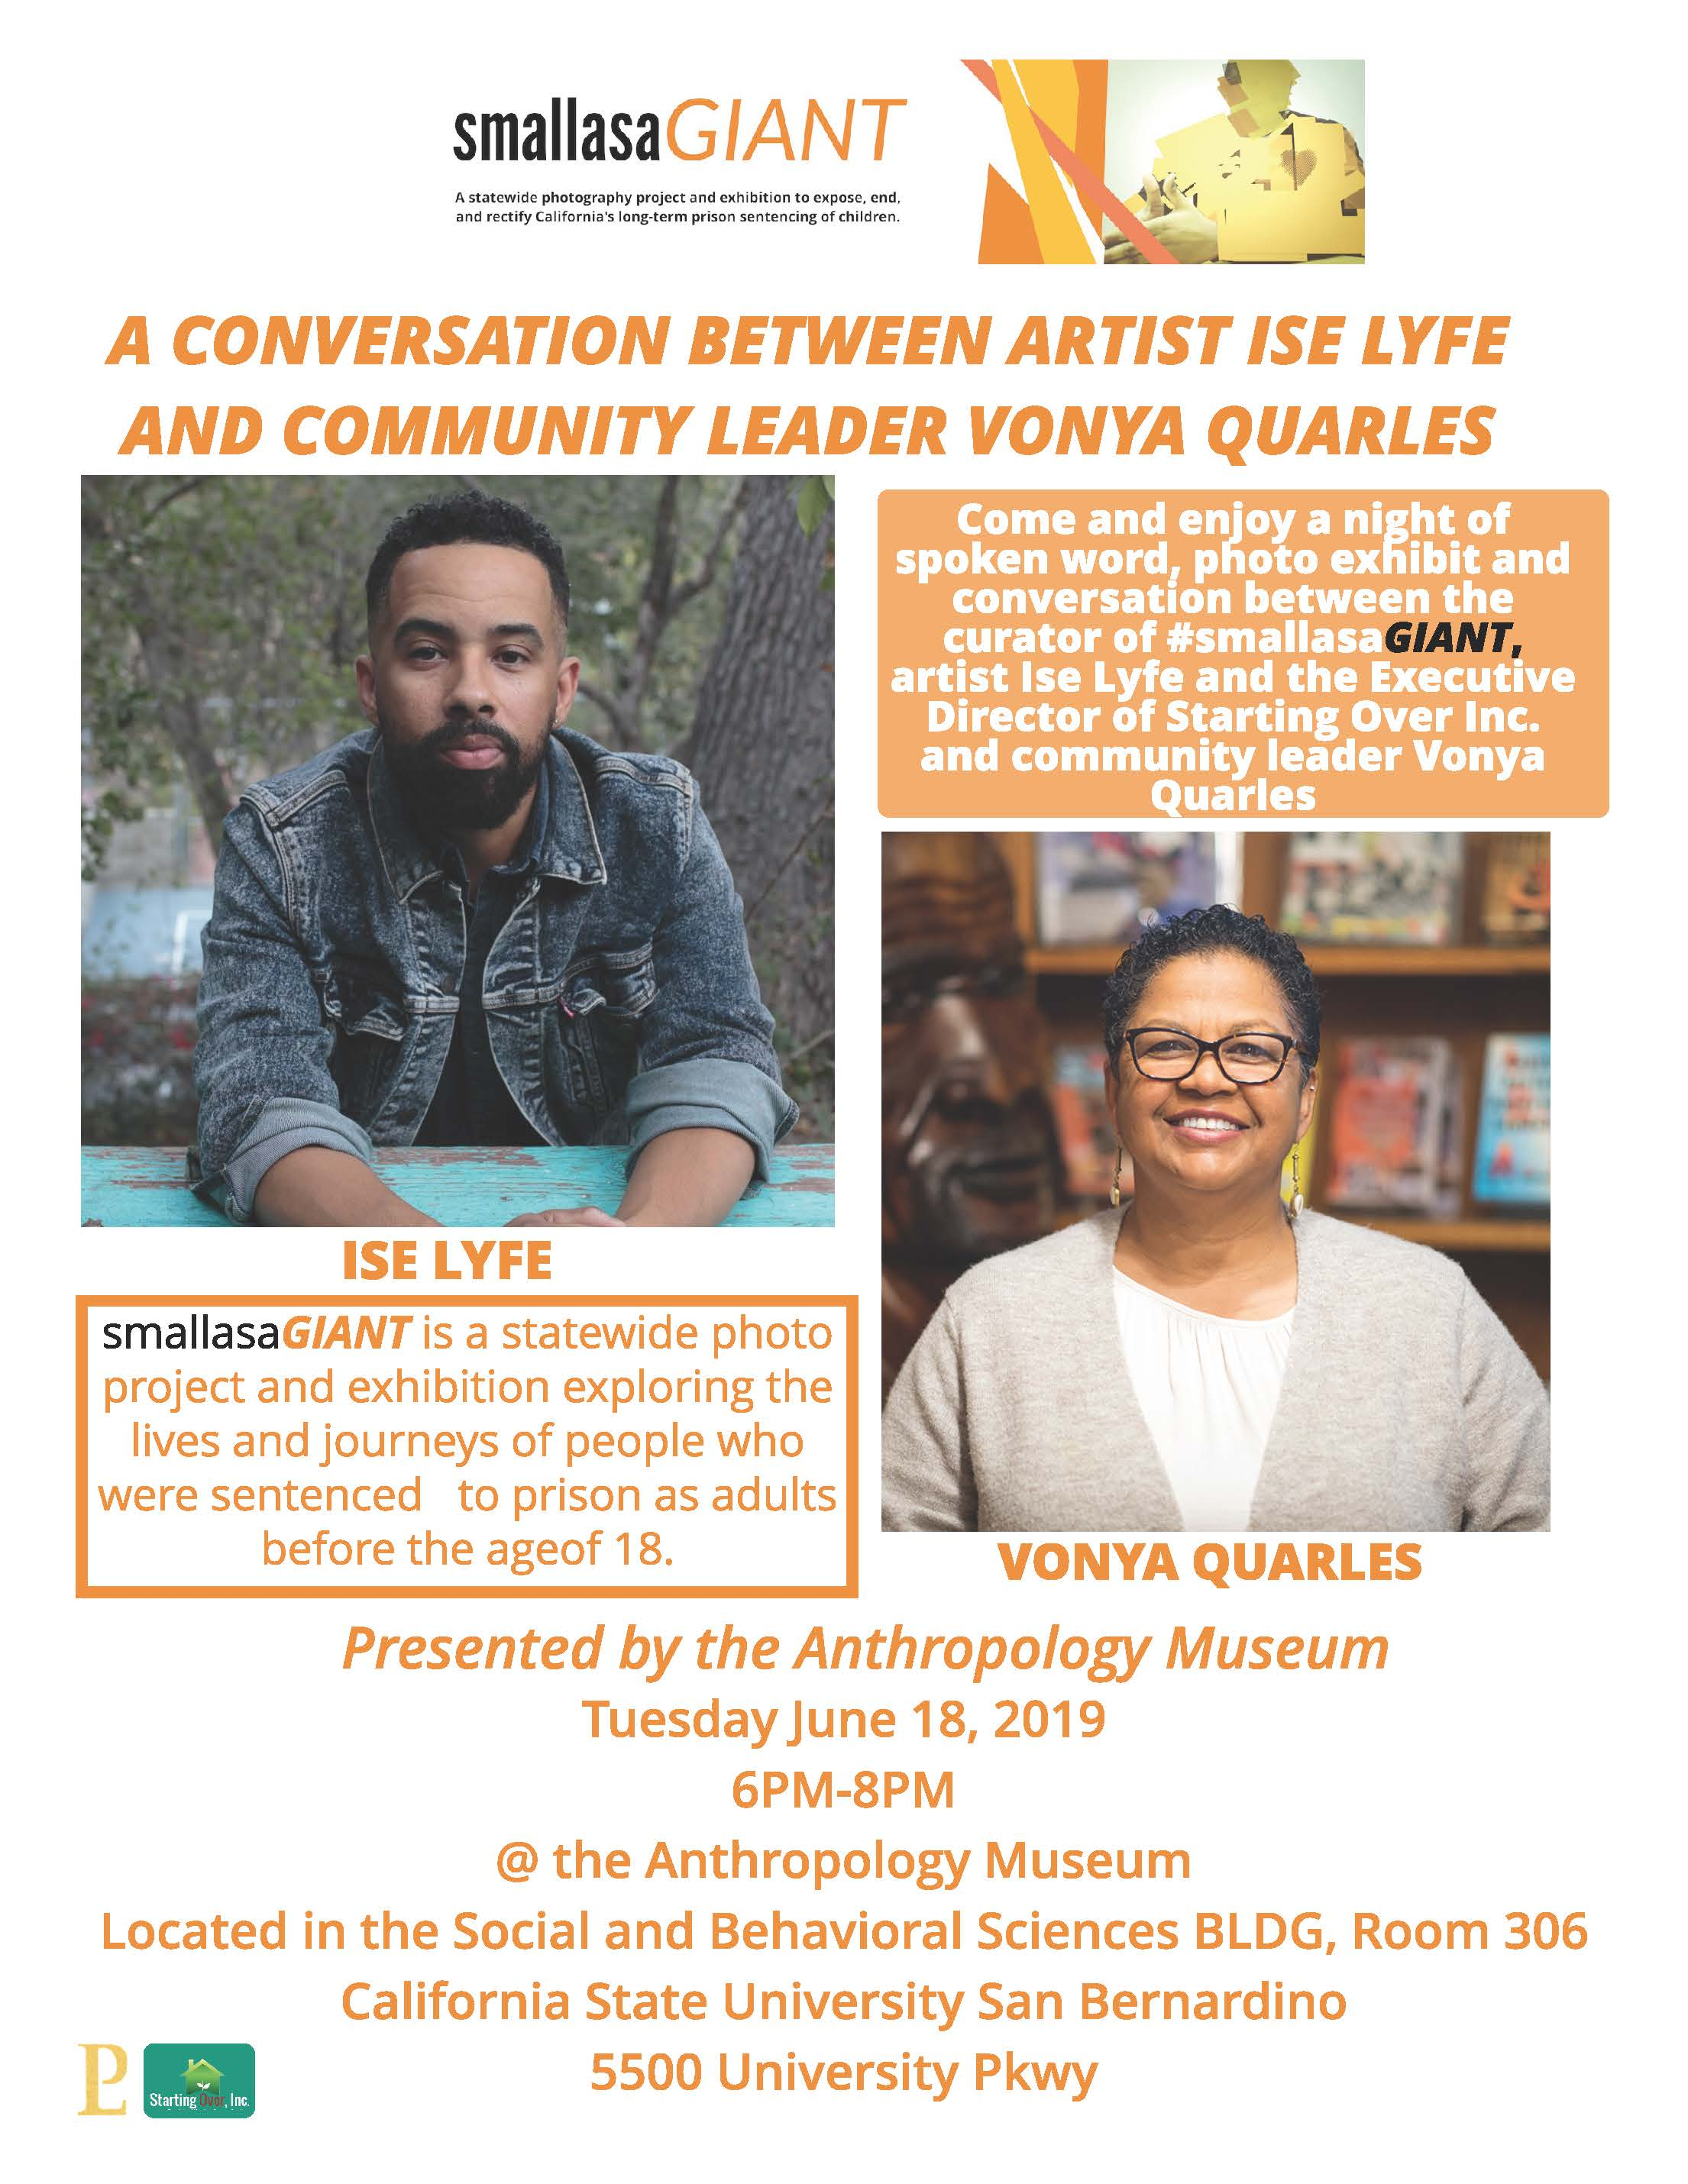 "A conversation between curator/artist Ise Lyfe and community leader Vonya Quarles will highlight the closing reception for the exhibit ""smallasaGIANT"" at the Cal State San Bernardino Anthropology Museum on Tuesday, June 18."